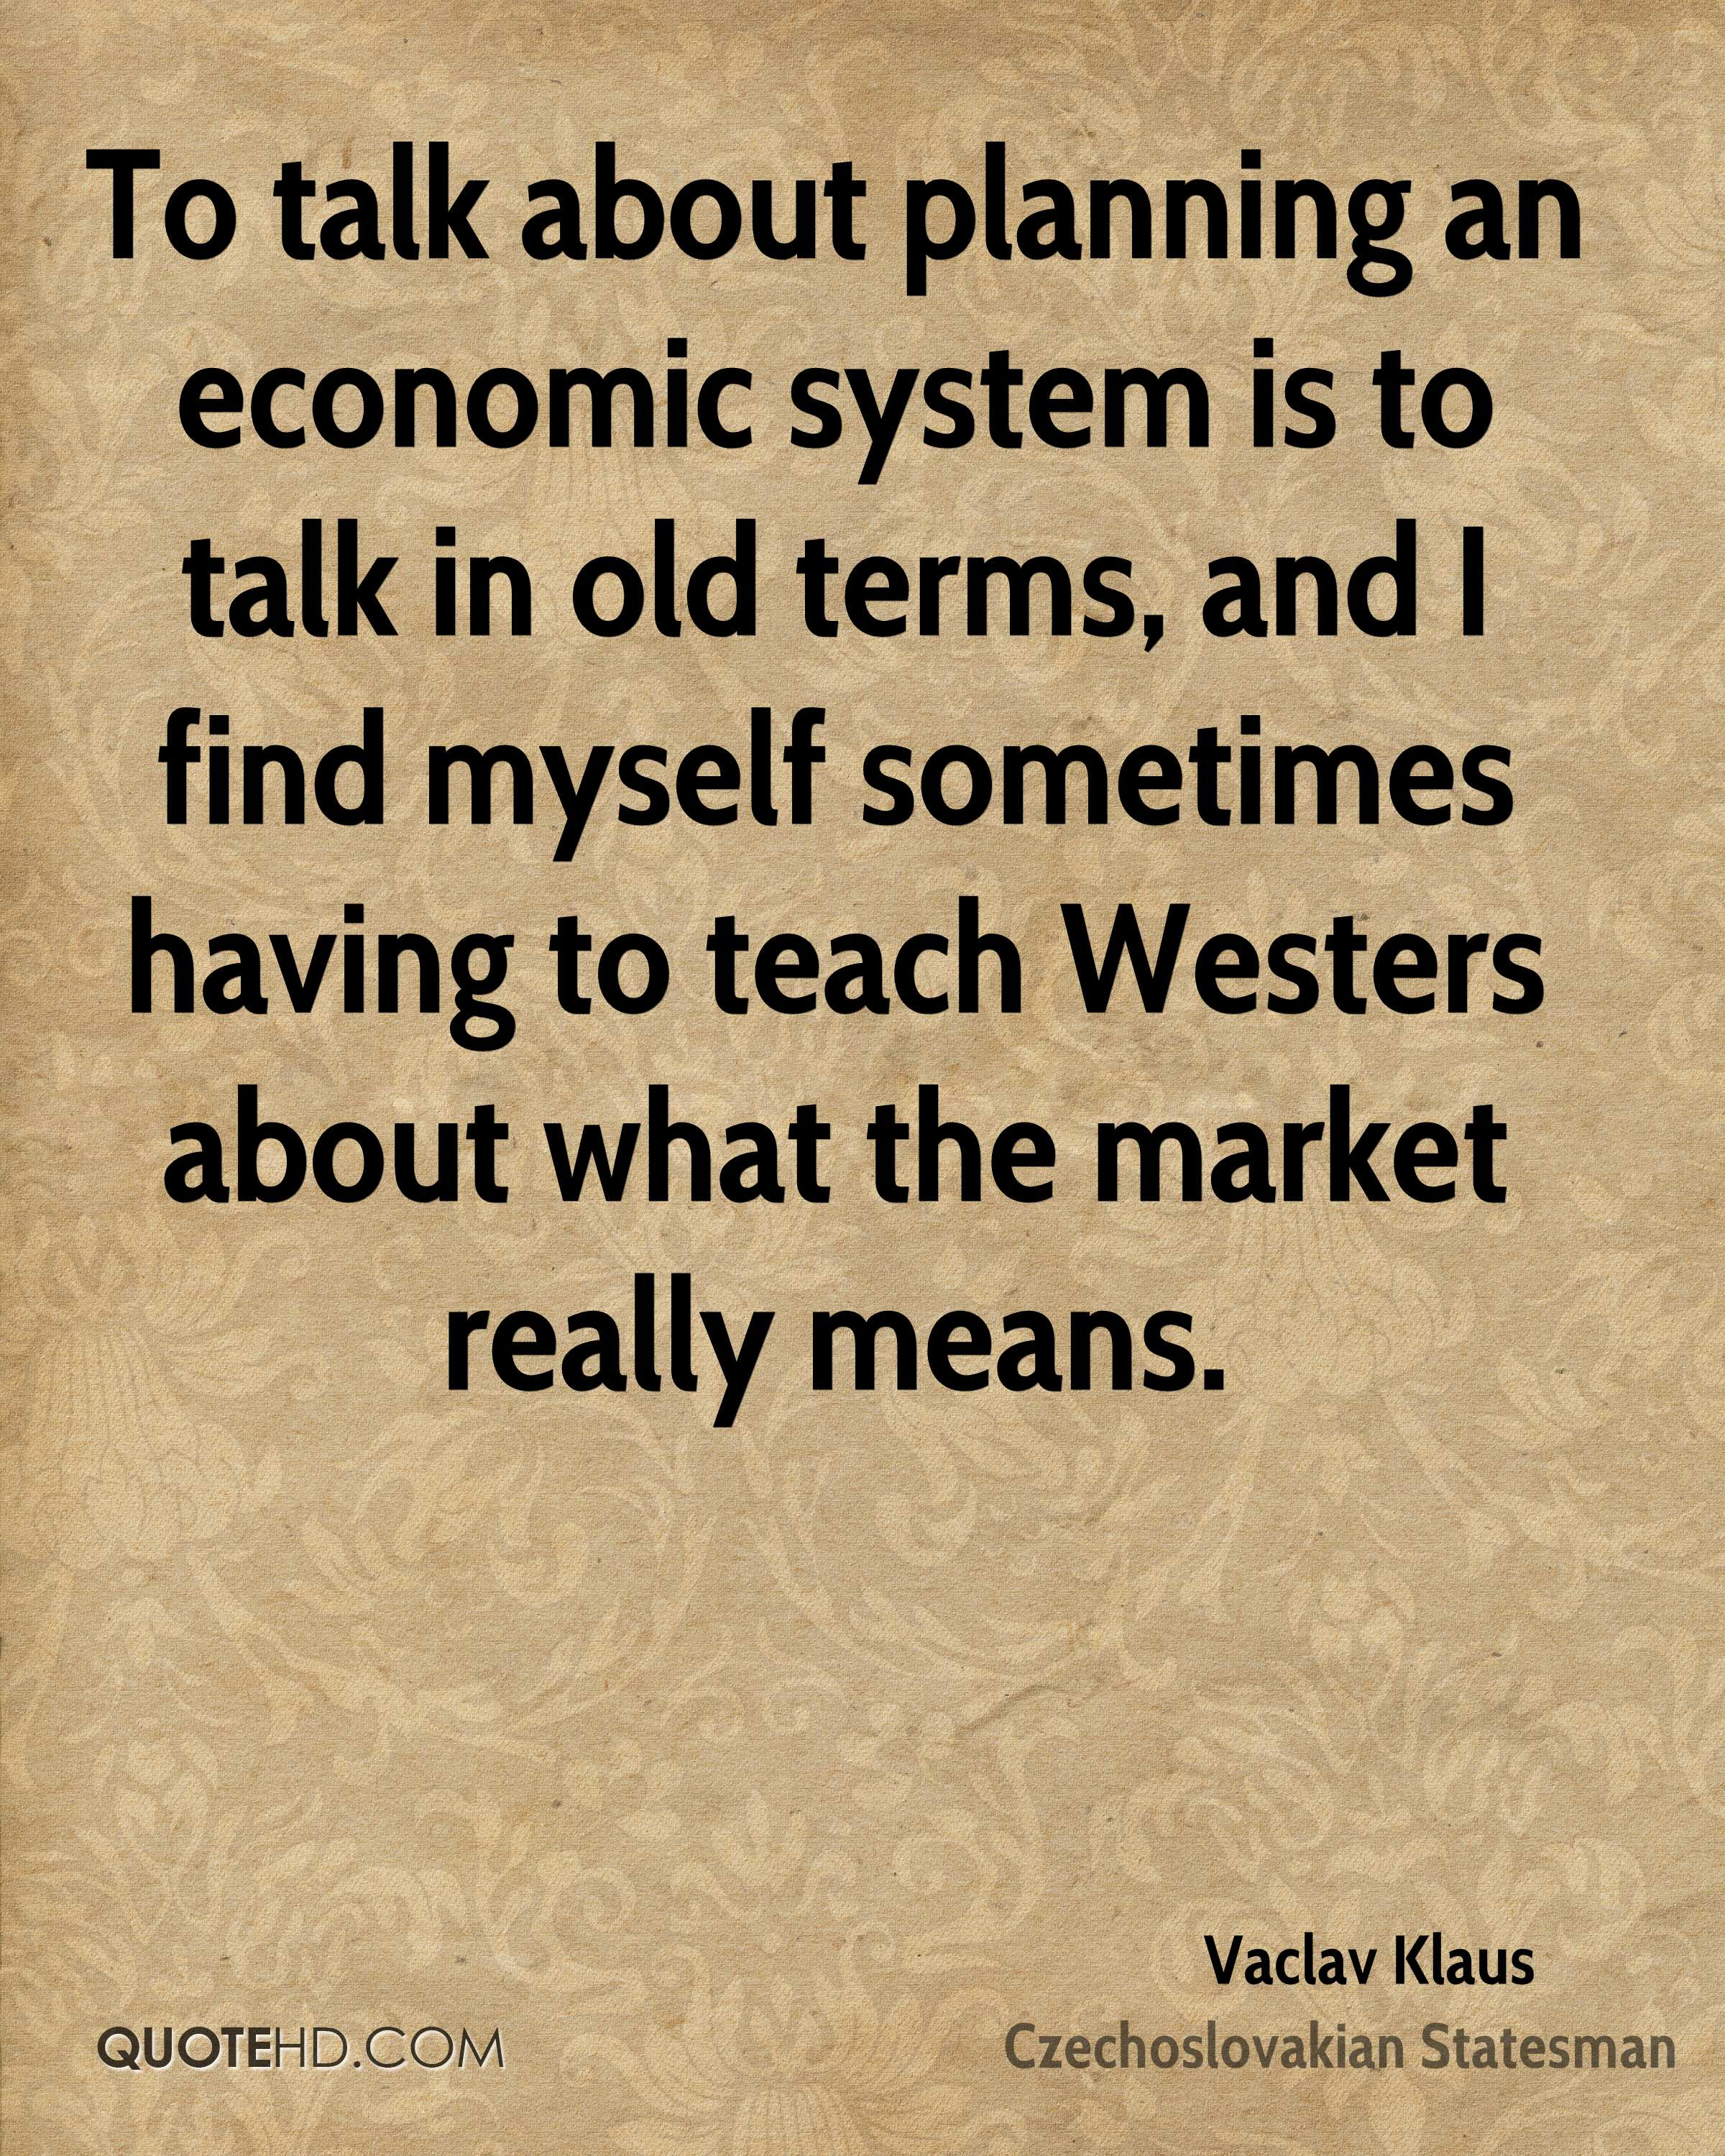 To talk about planning an economic system is to talk in old terms, and I find myself sometimes having to teach Westers about what the market really means.